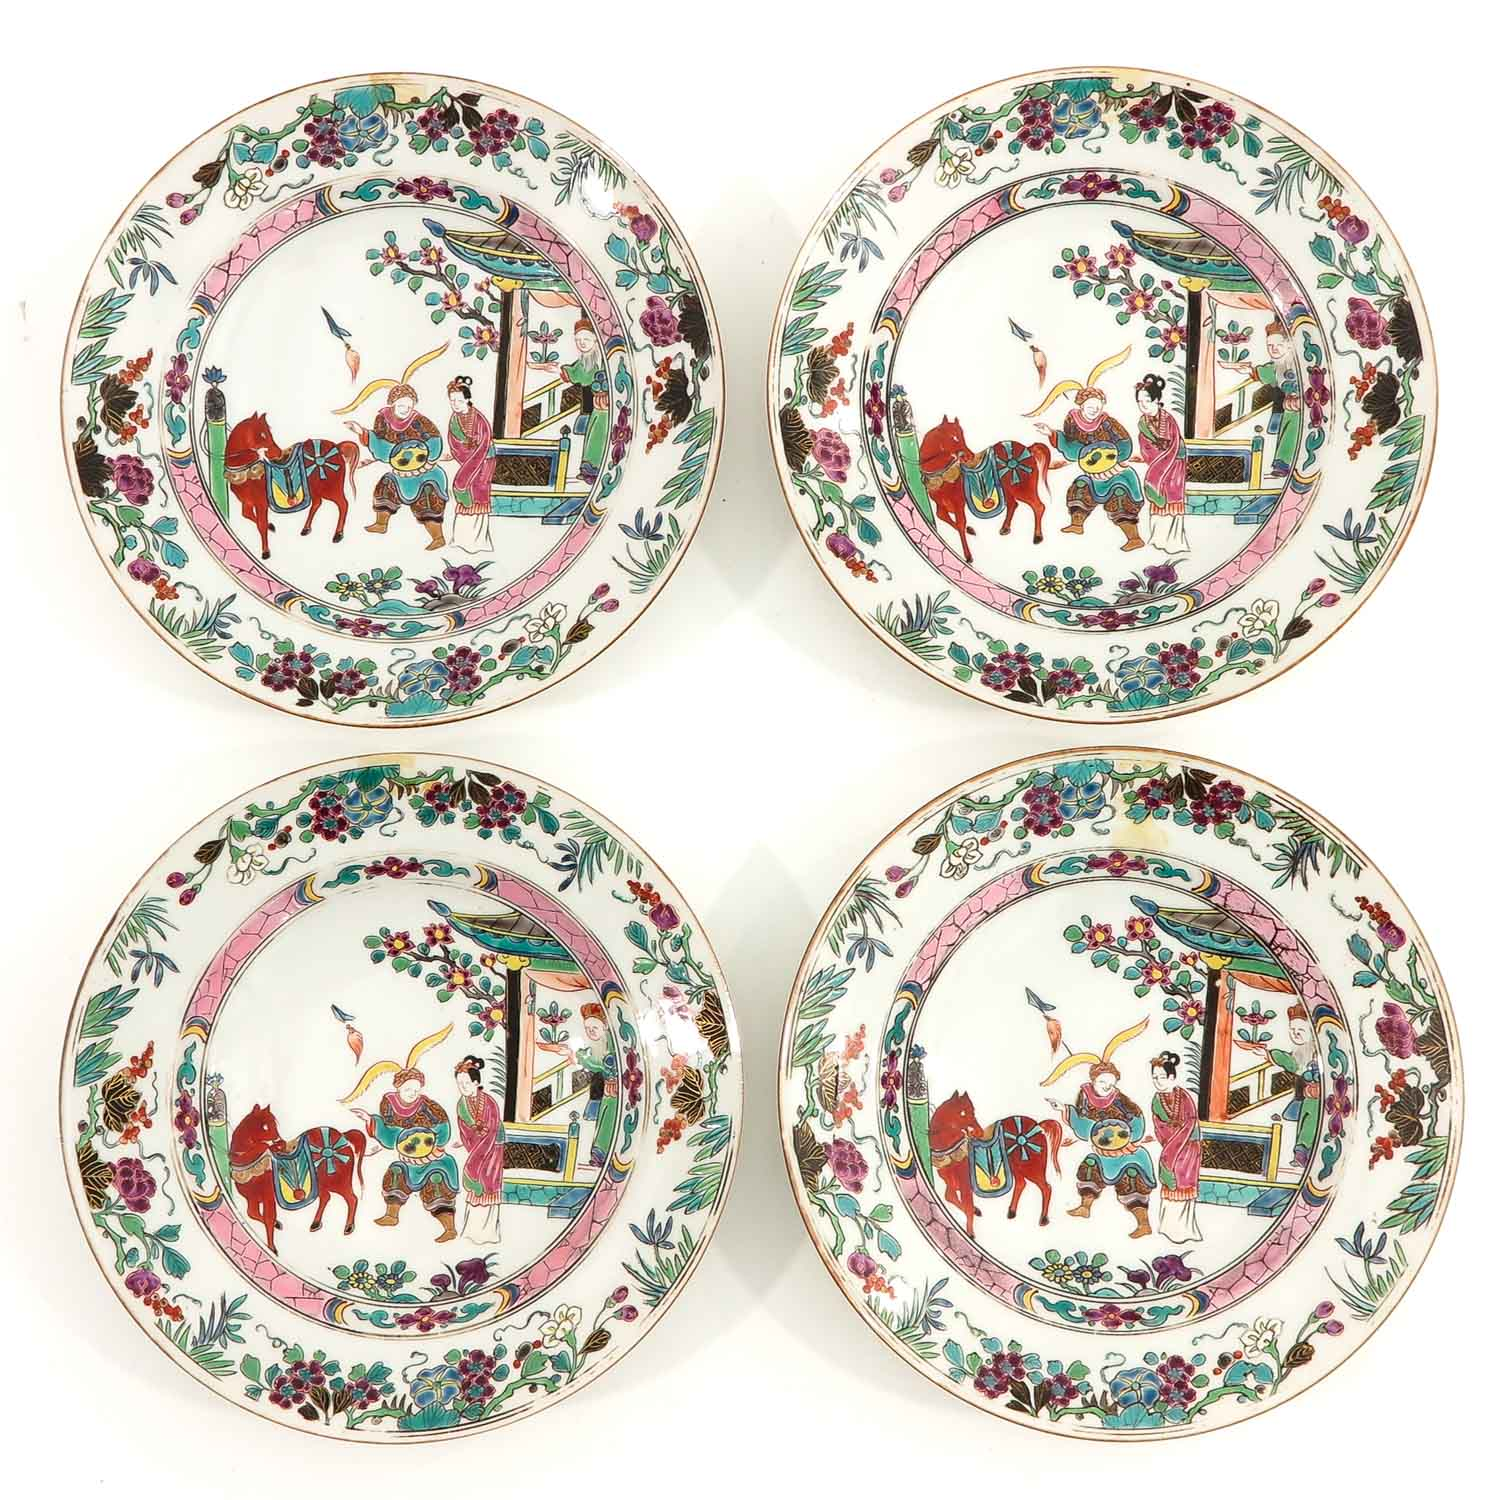 A Series of 4 Famille Rose Plates